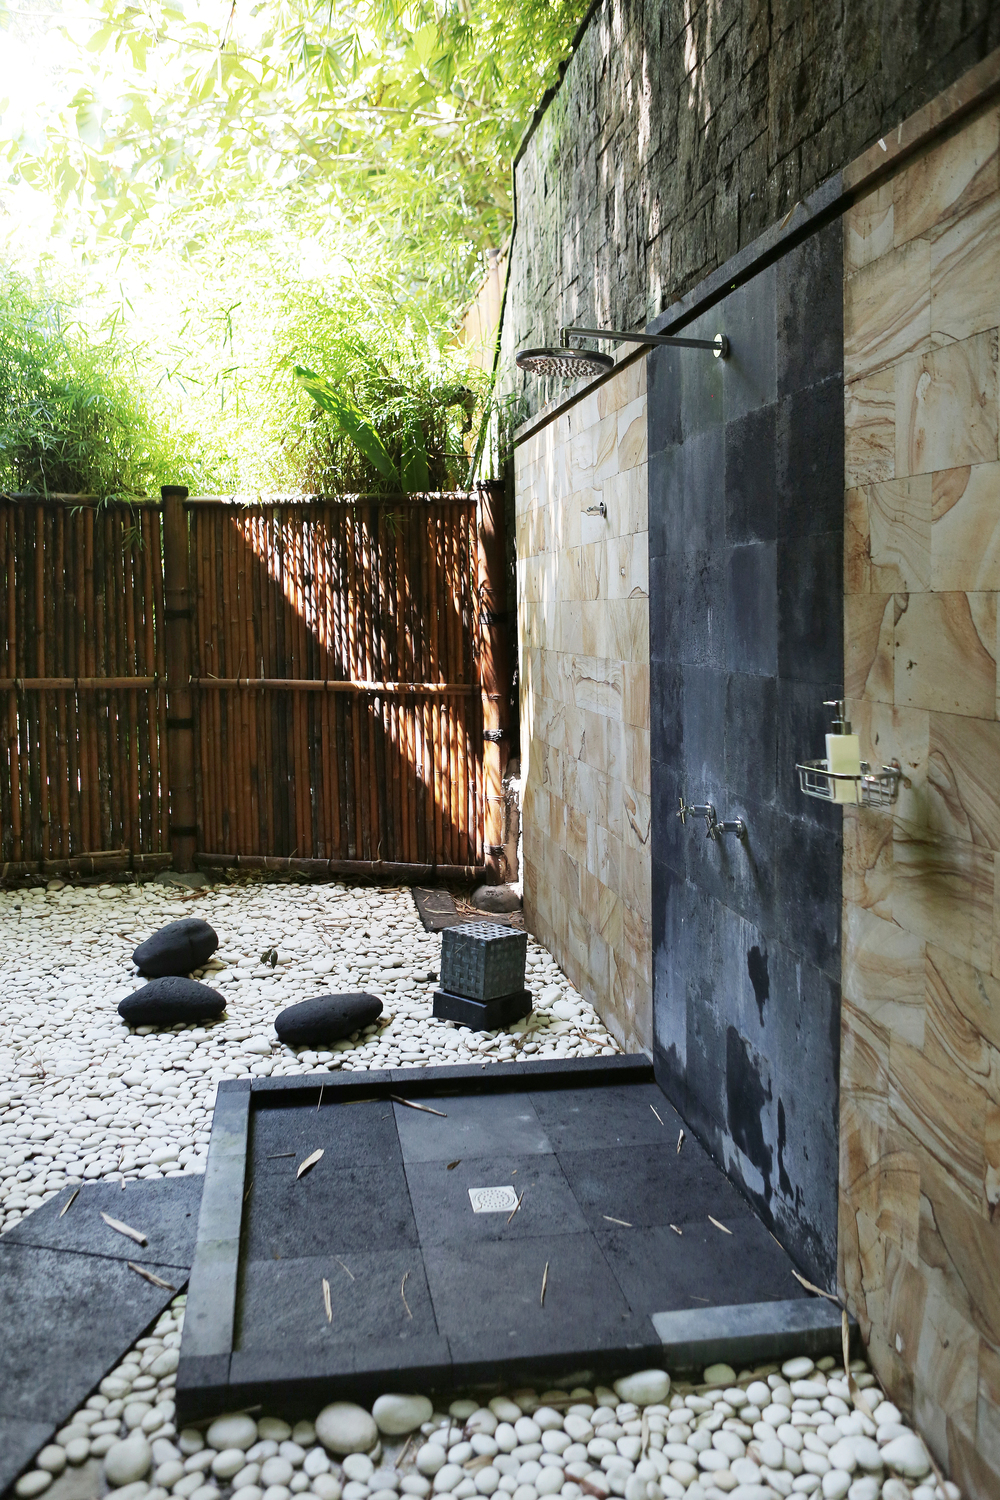 Outdoor shower with a balanced dark and light decor